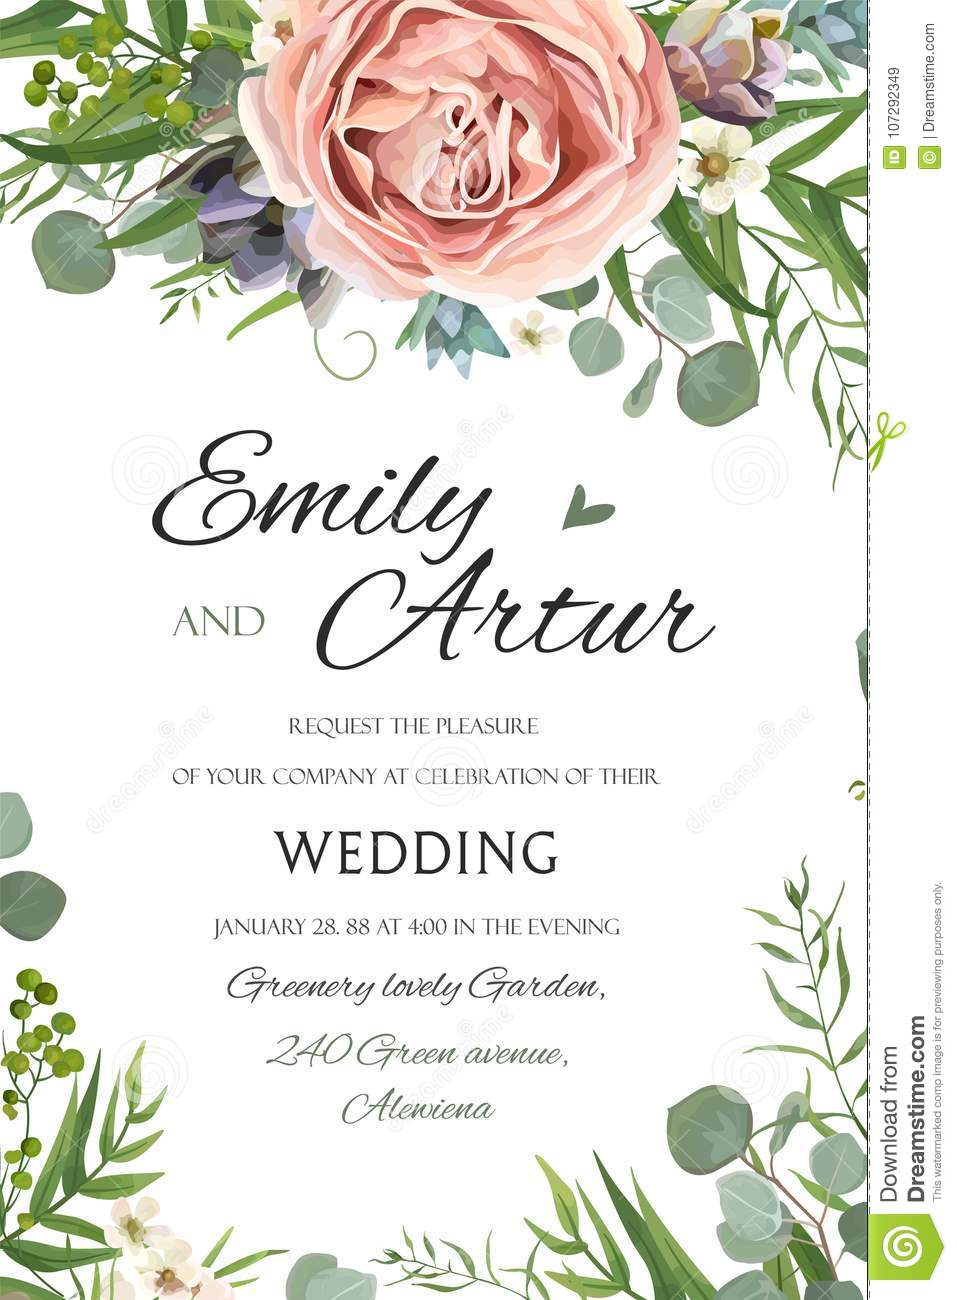 Wedding Invitation Invite Save The Date Floral Card